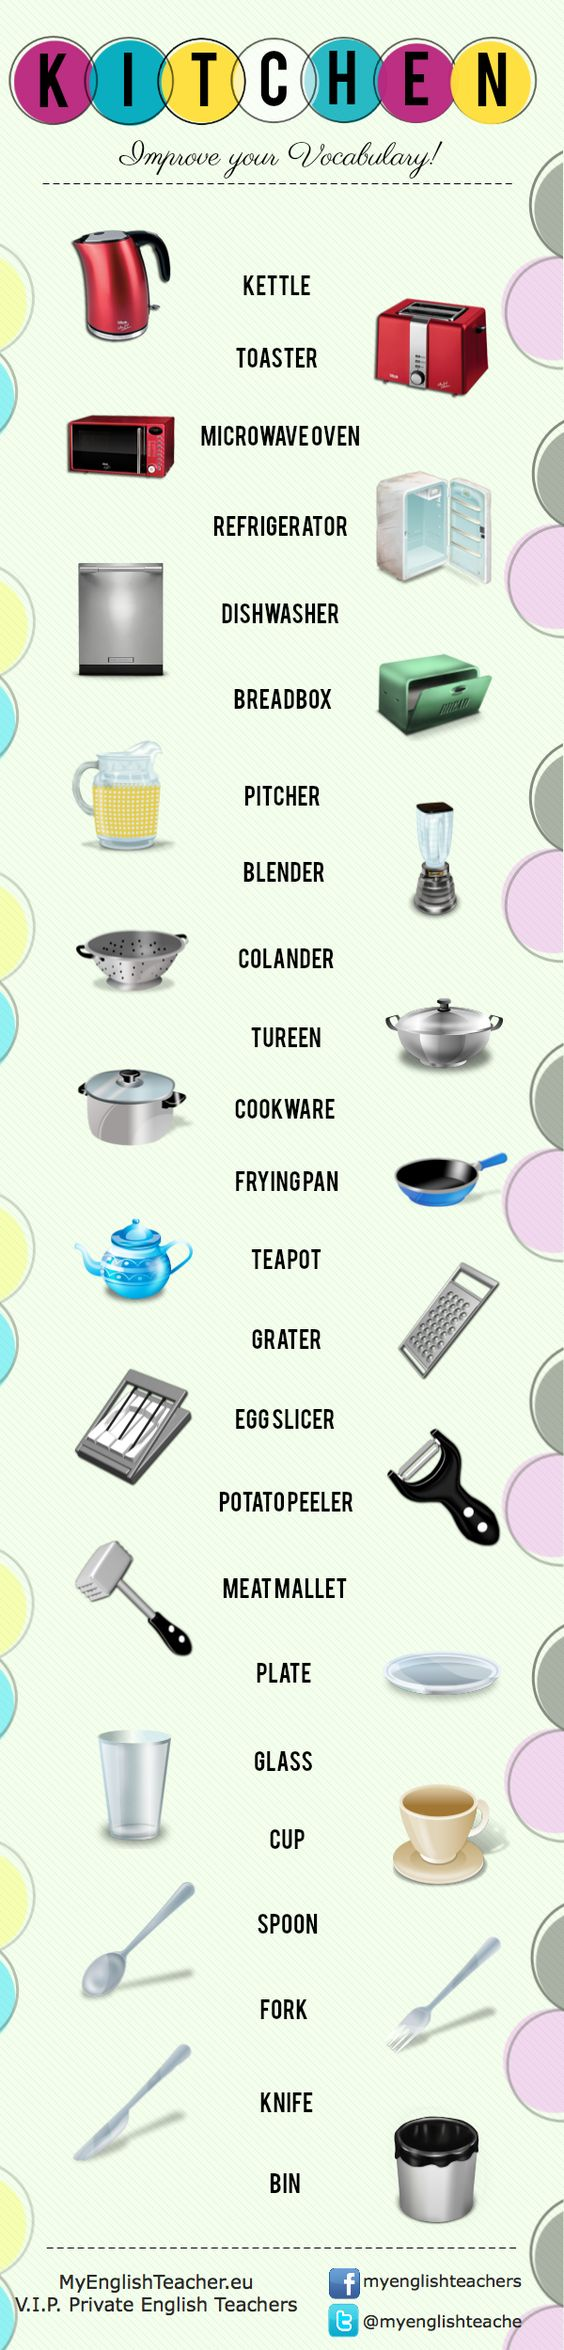 EwR.Poster #English Vocabulary - 24 Tools in the Kitchen: